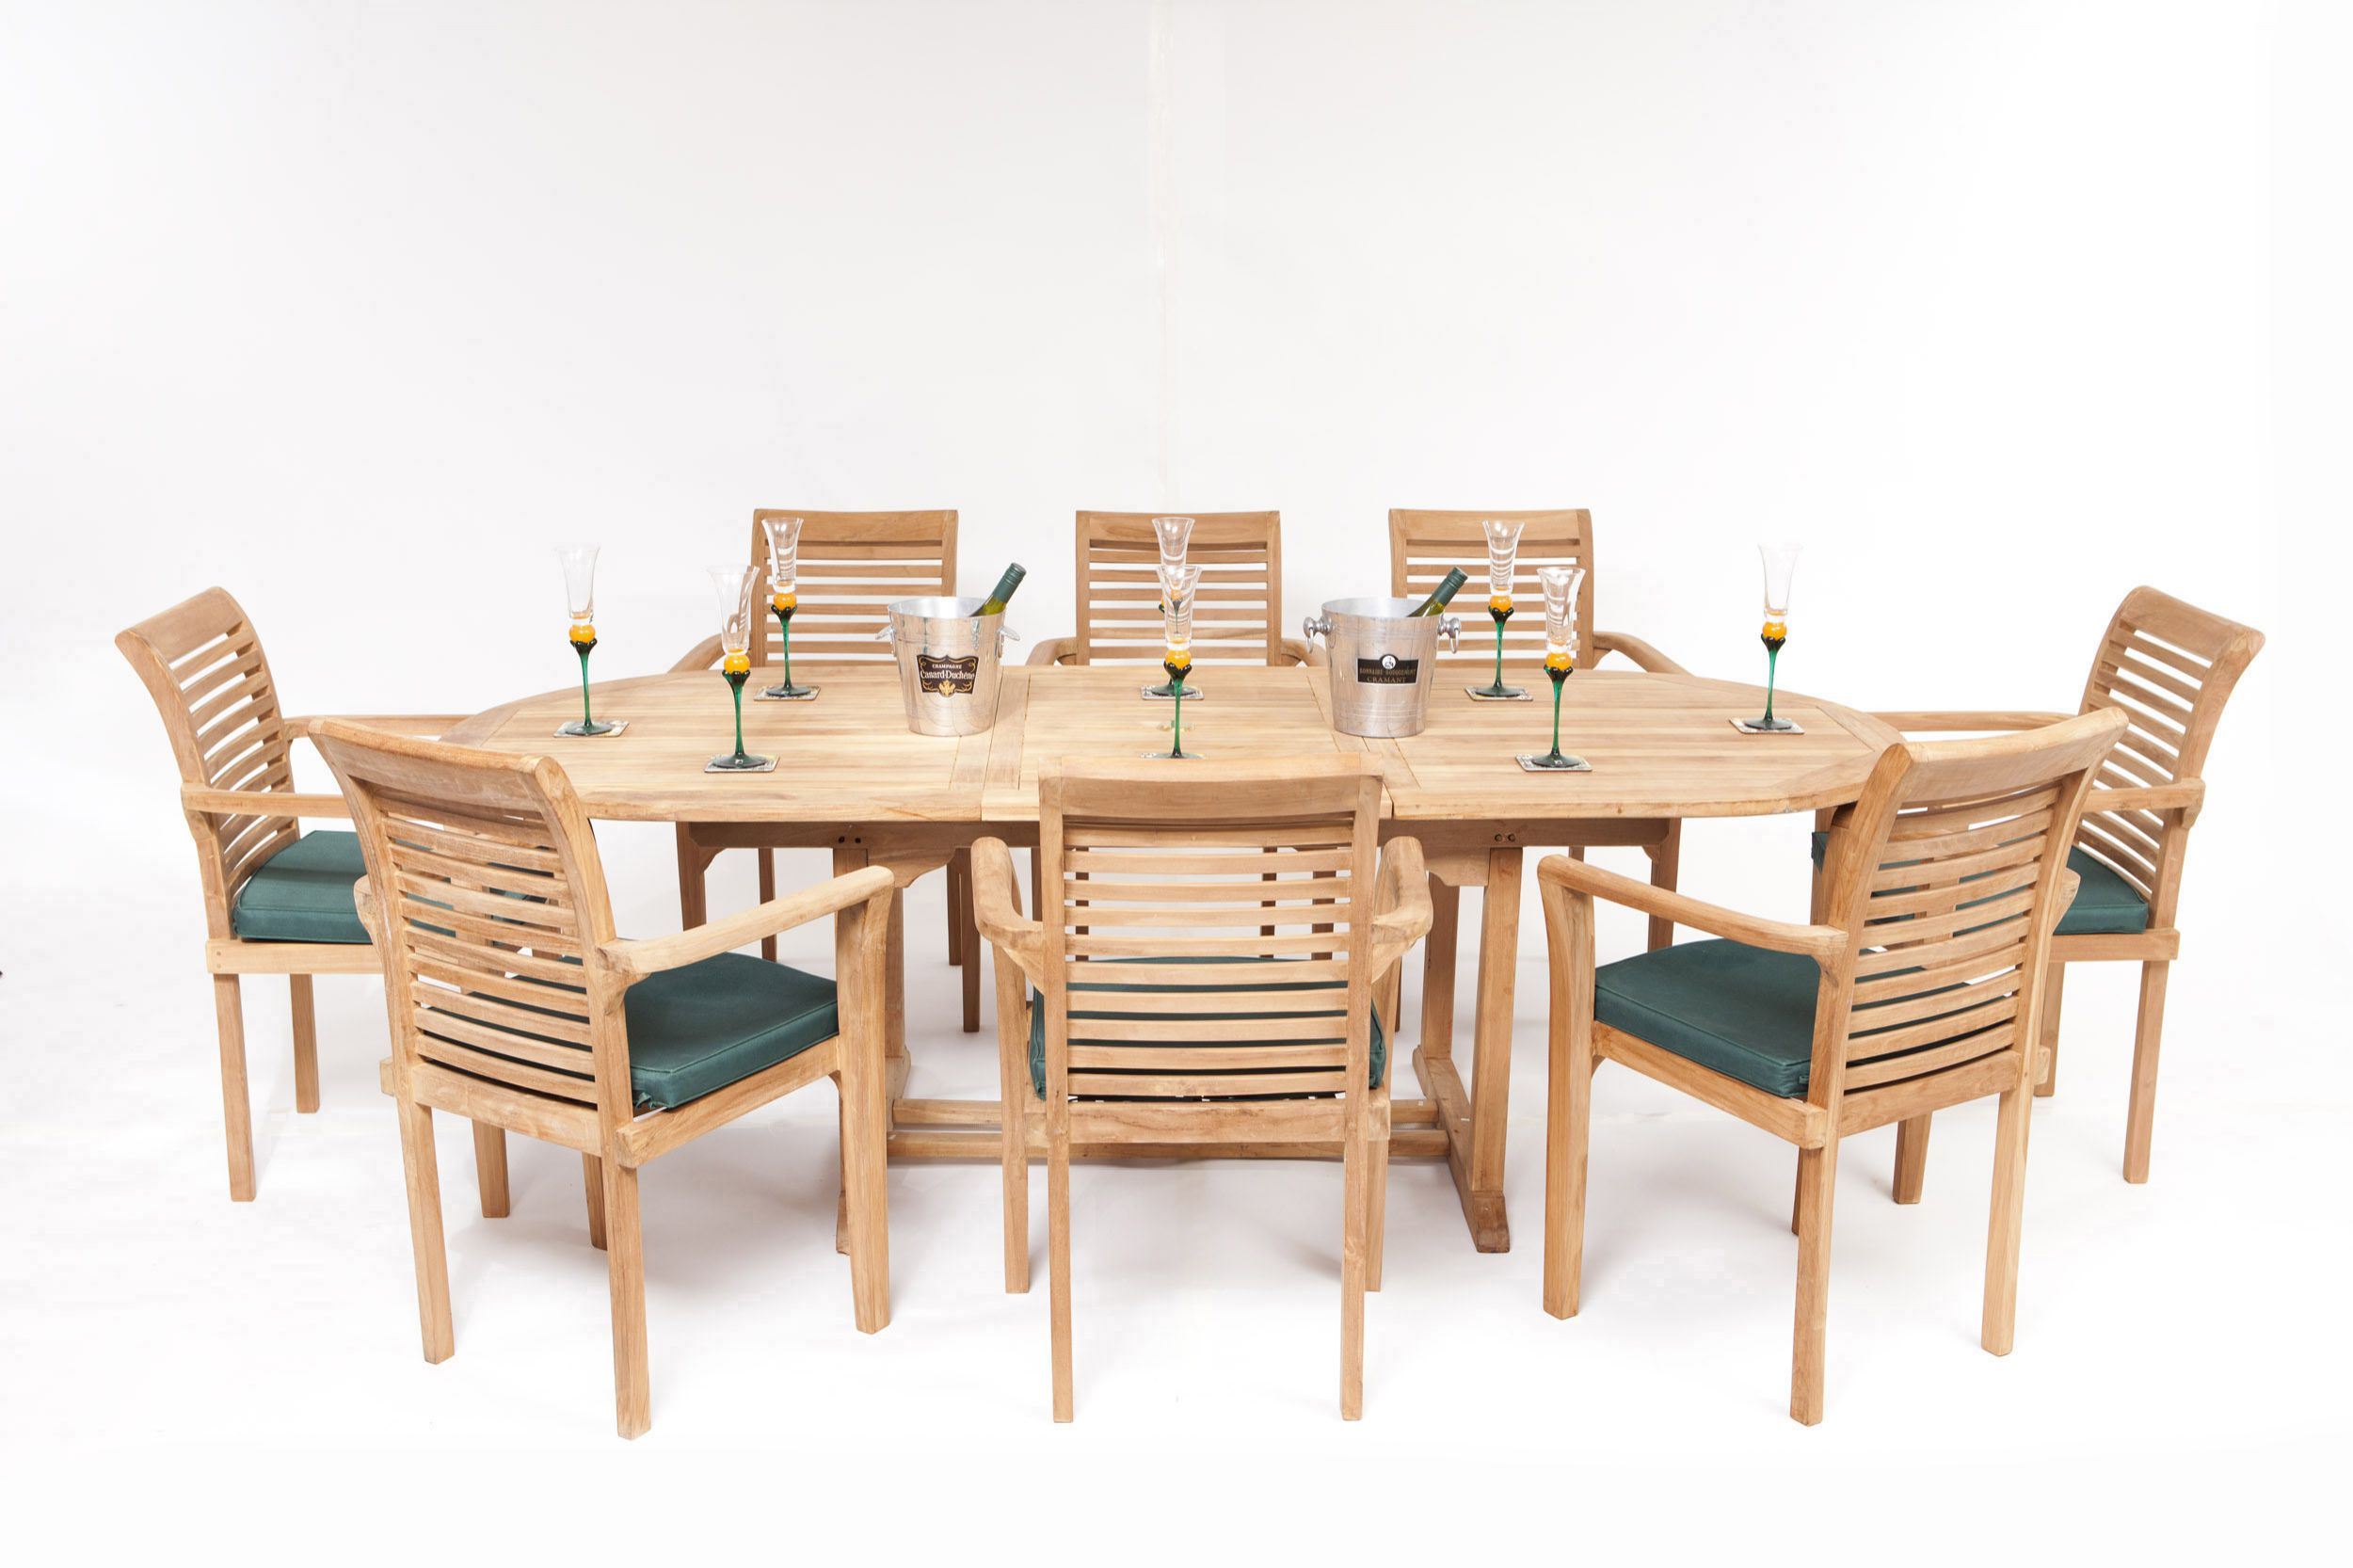 monte carlo 8 seater teak garden furniture set - Garden Furniture Offers